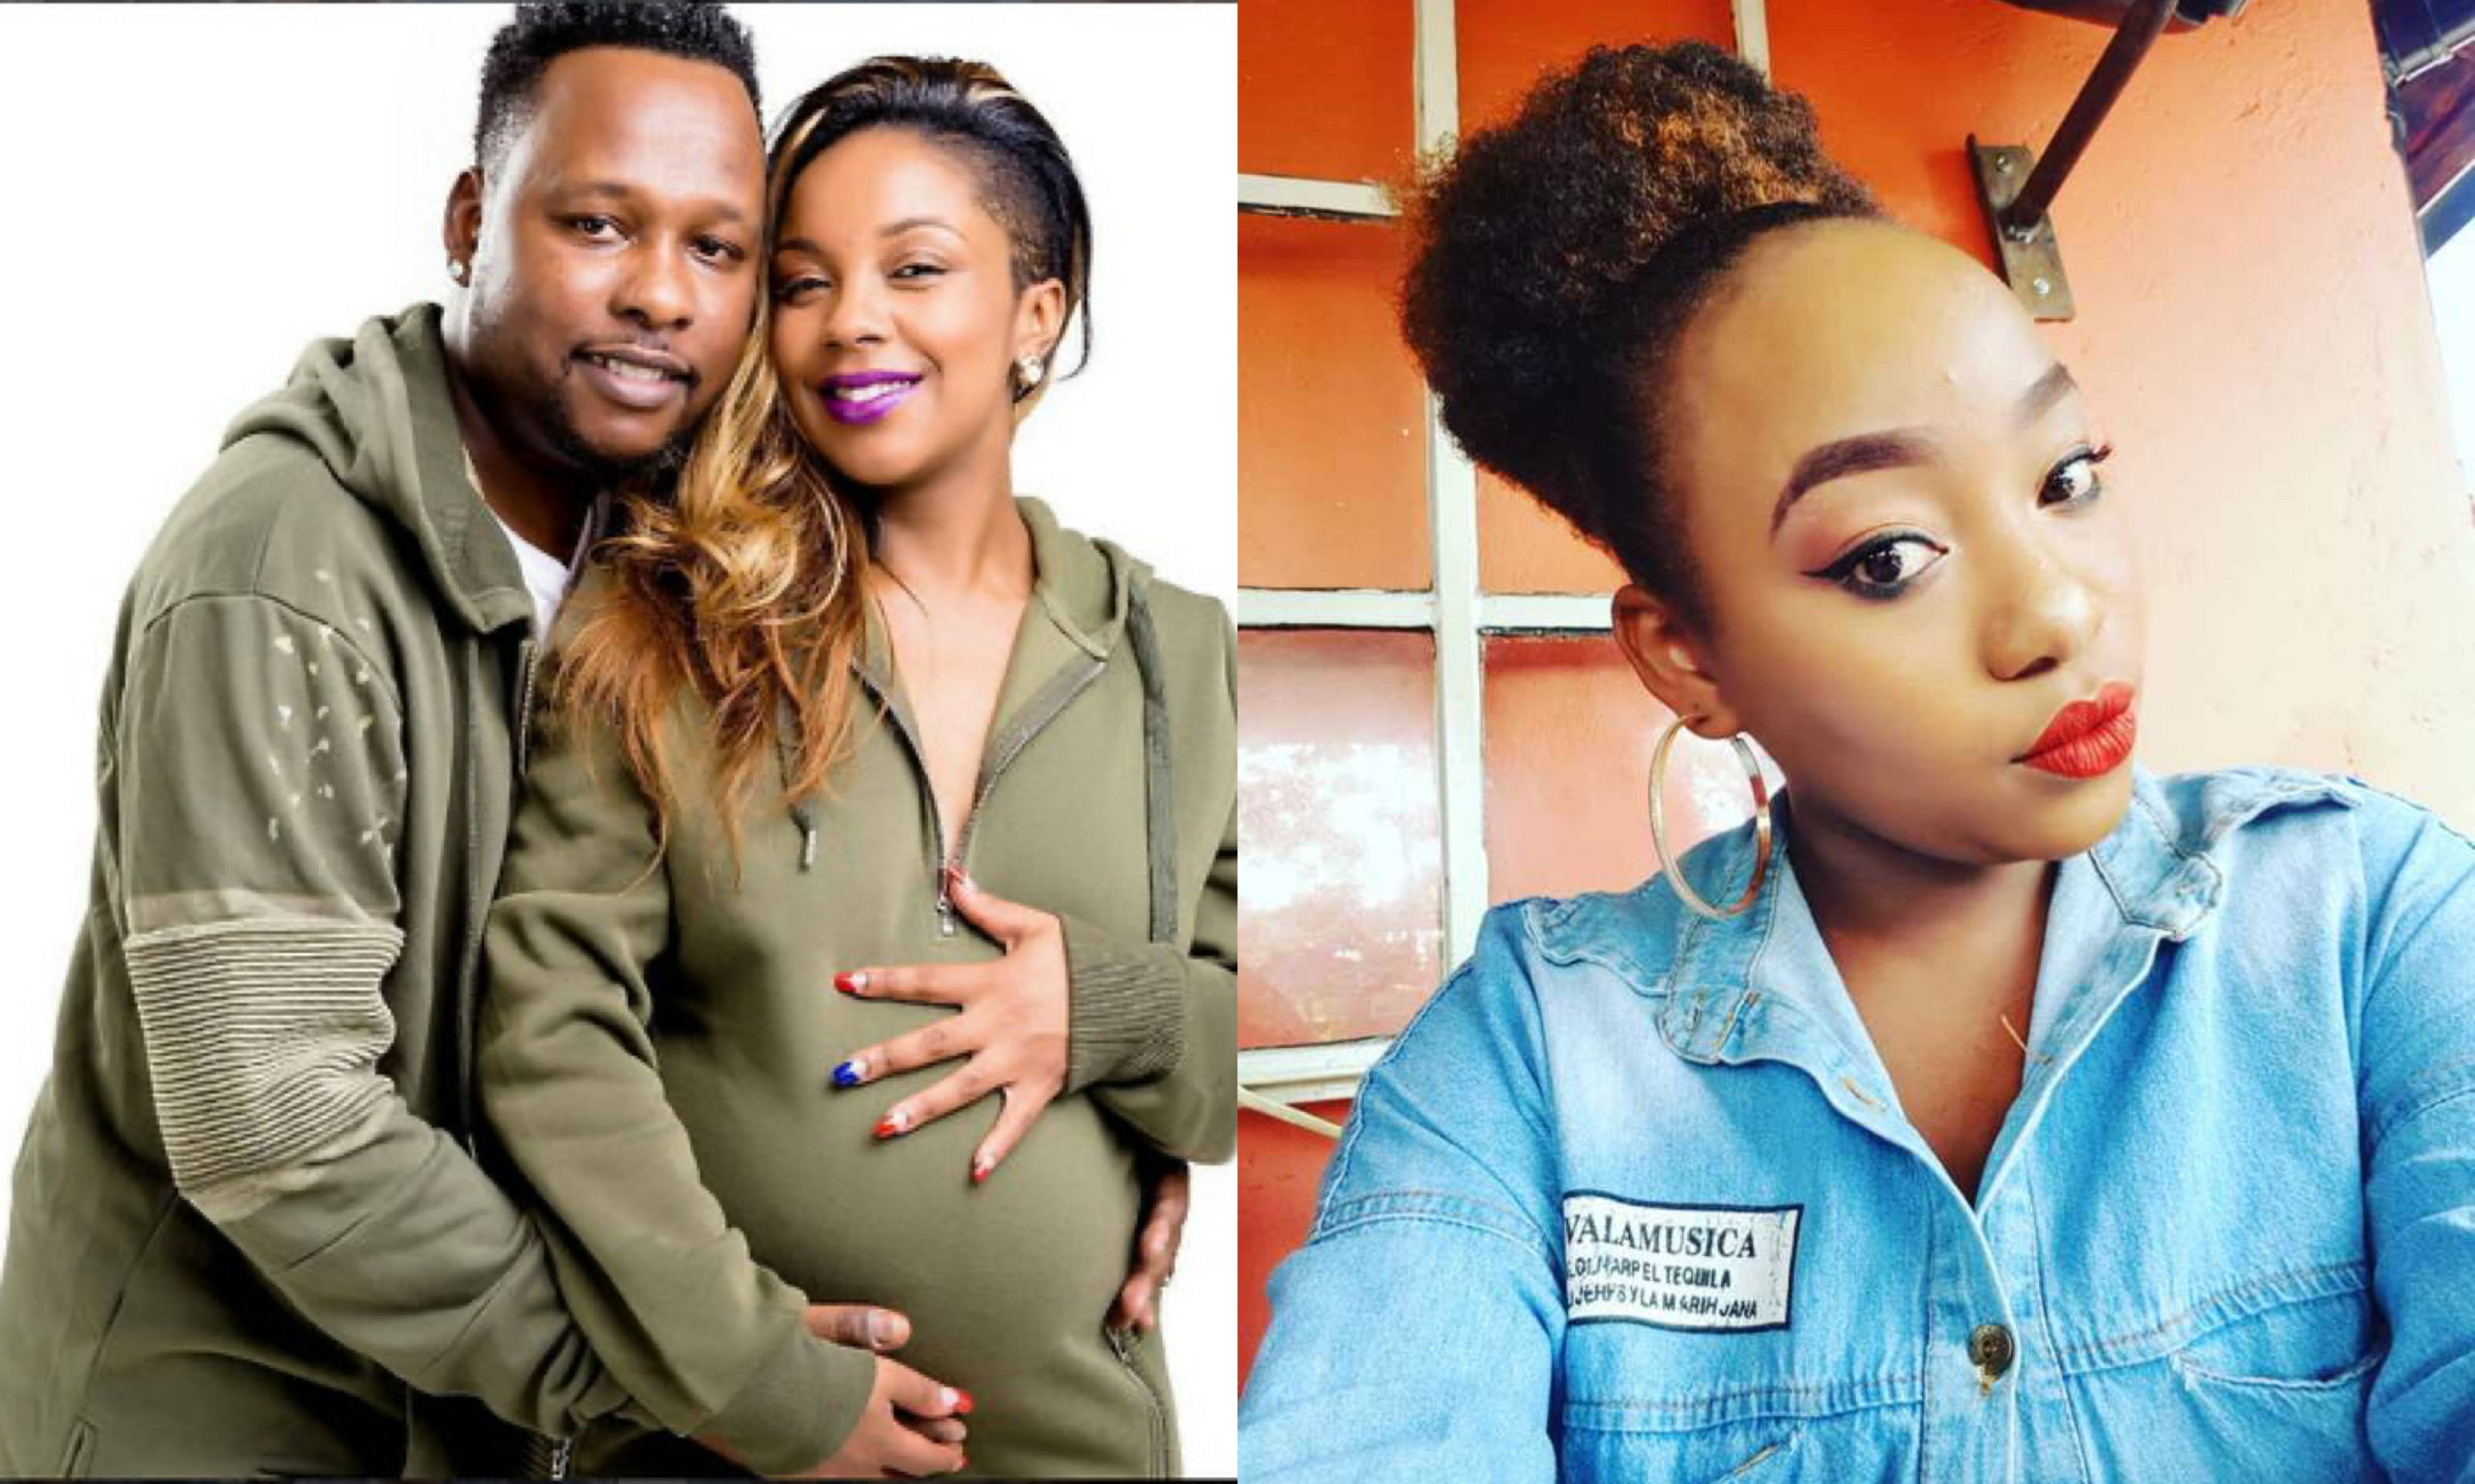 Side chick linked to Marya's ex husband unveils video showing bruises received after serious beating